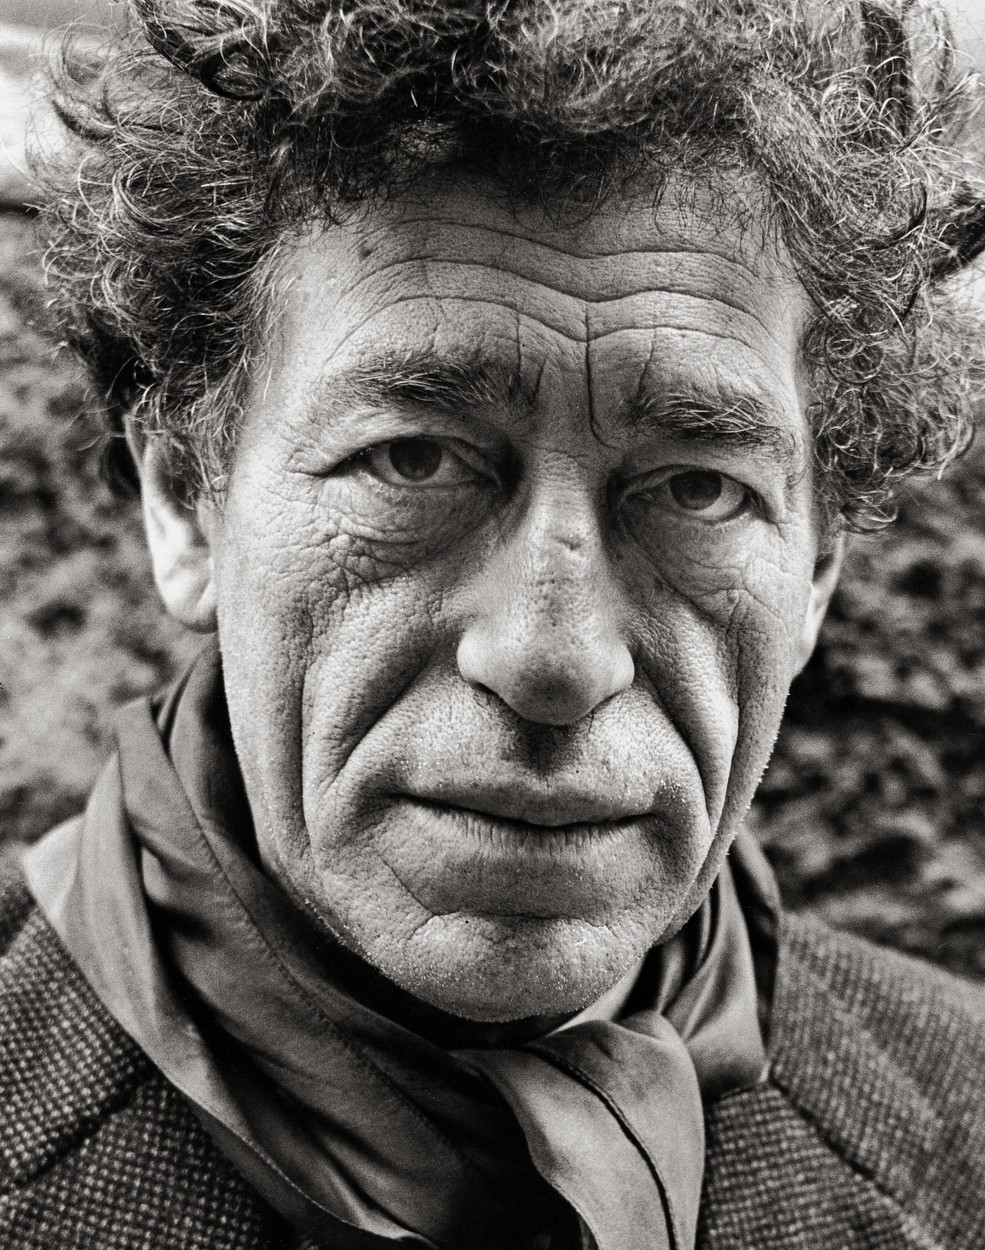 Sculptor and graphic artist Alberto Giacometti. Photograph. Paris. 1957., Image: 156465966, License: Rights-managed, Restrictions: , Model Release: no, Credit line: Profimedia, Imagno